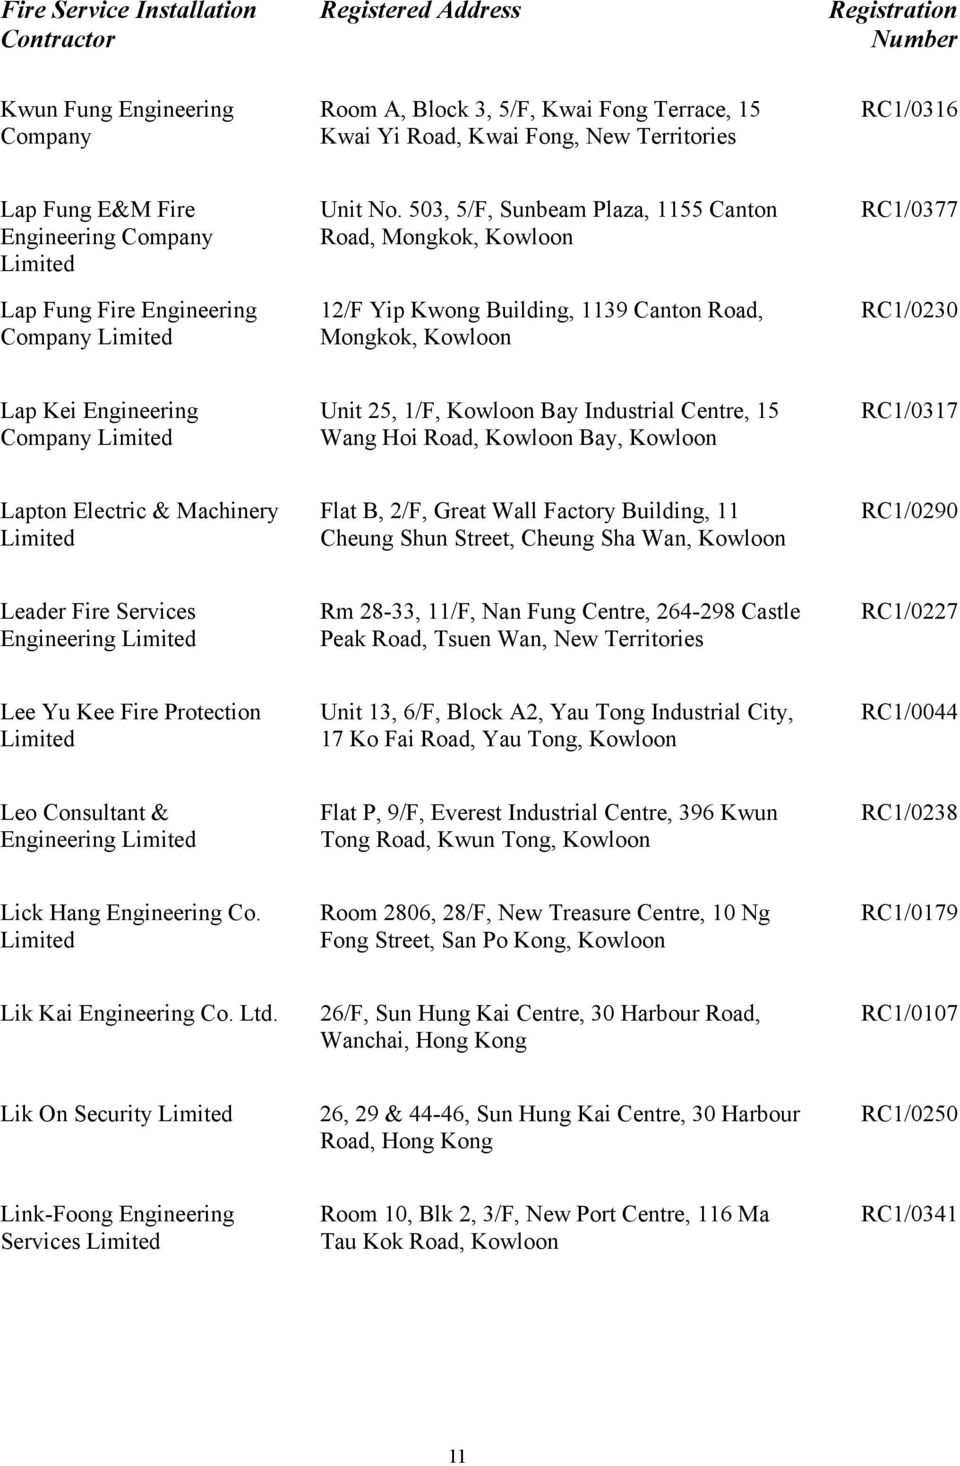 Industrial Centre, 15 Wang Hoi Road, Kowloon Bay, Kowloon RC1/0317 Lapton Electric & Machinery Flat B, 2/F, Great Wall Factory Building, 11 Cheung Shun Street, Cheung Sha Wan, Kowloon RC1/0290 Leader